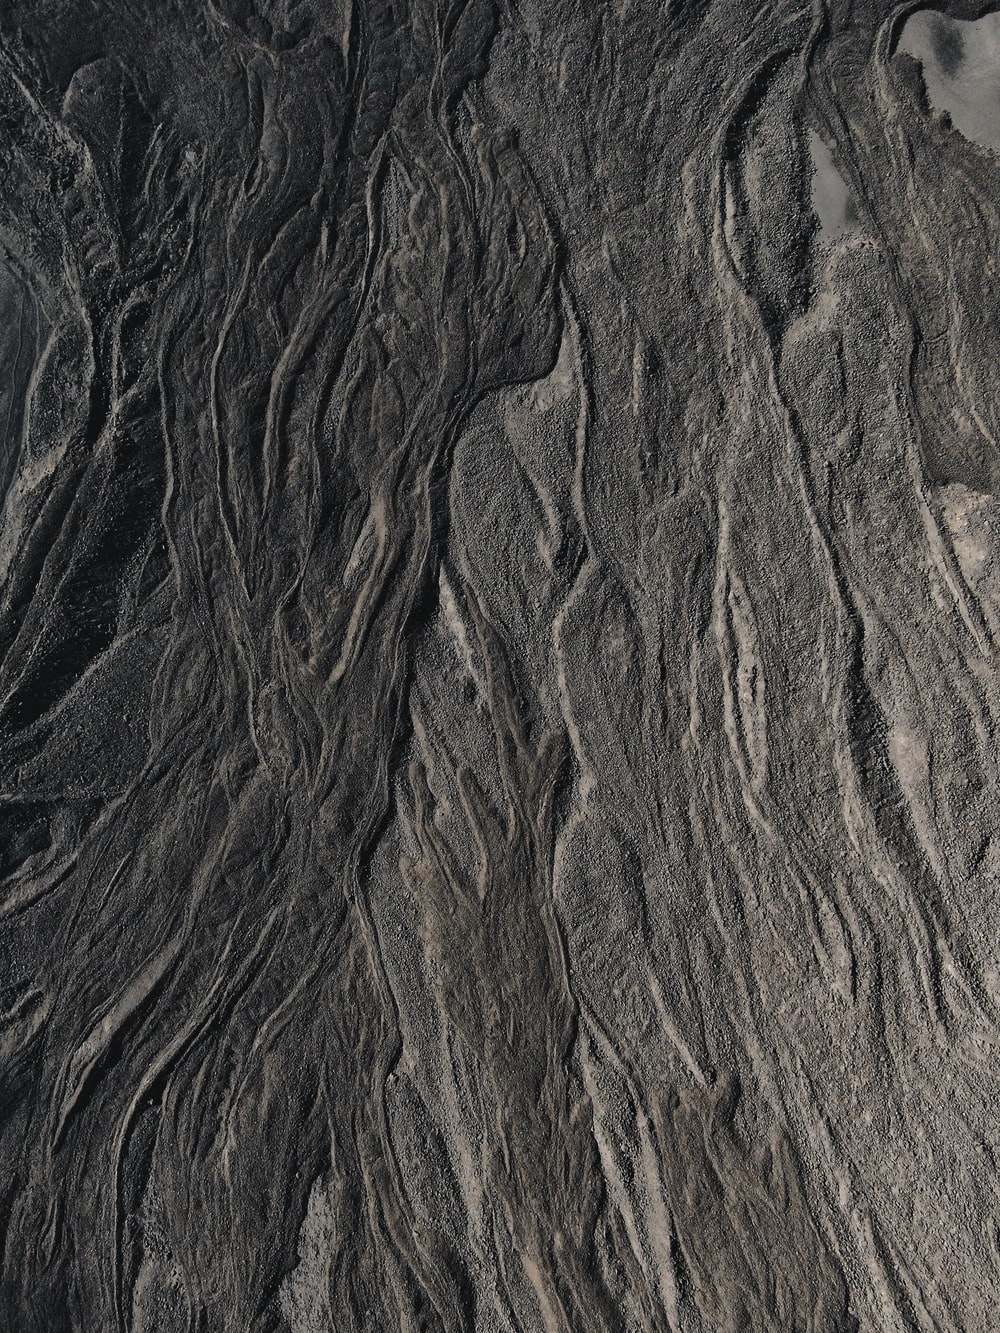 brown and black rock formation